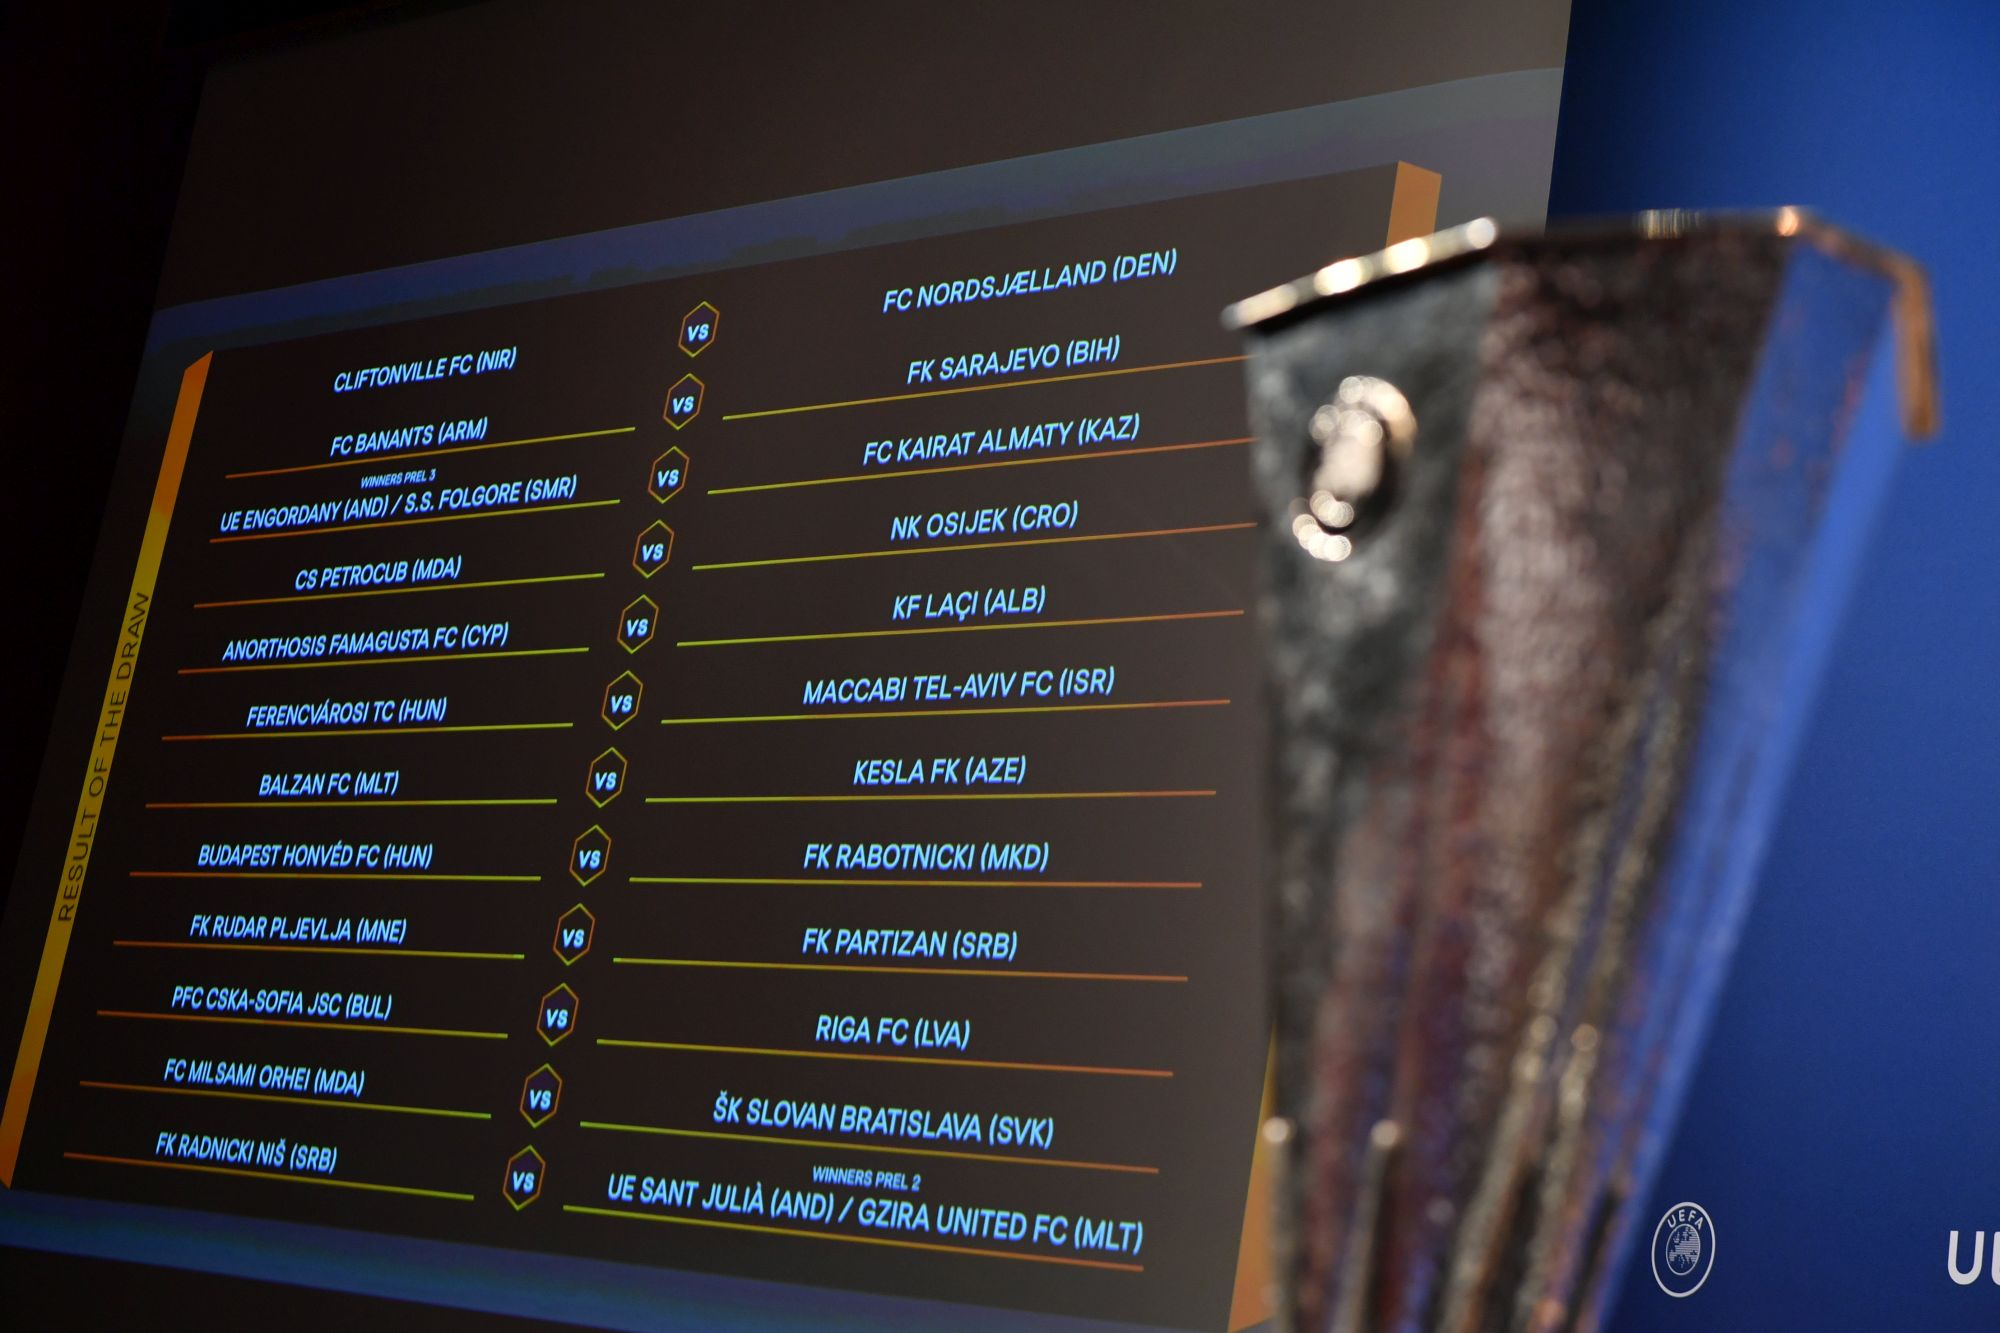 UEFA Europa League 2018/19 - First Qualifying Round Draw